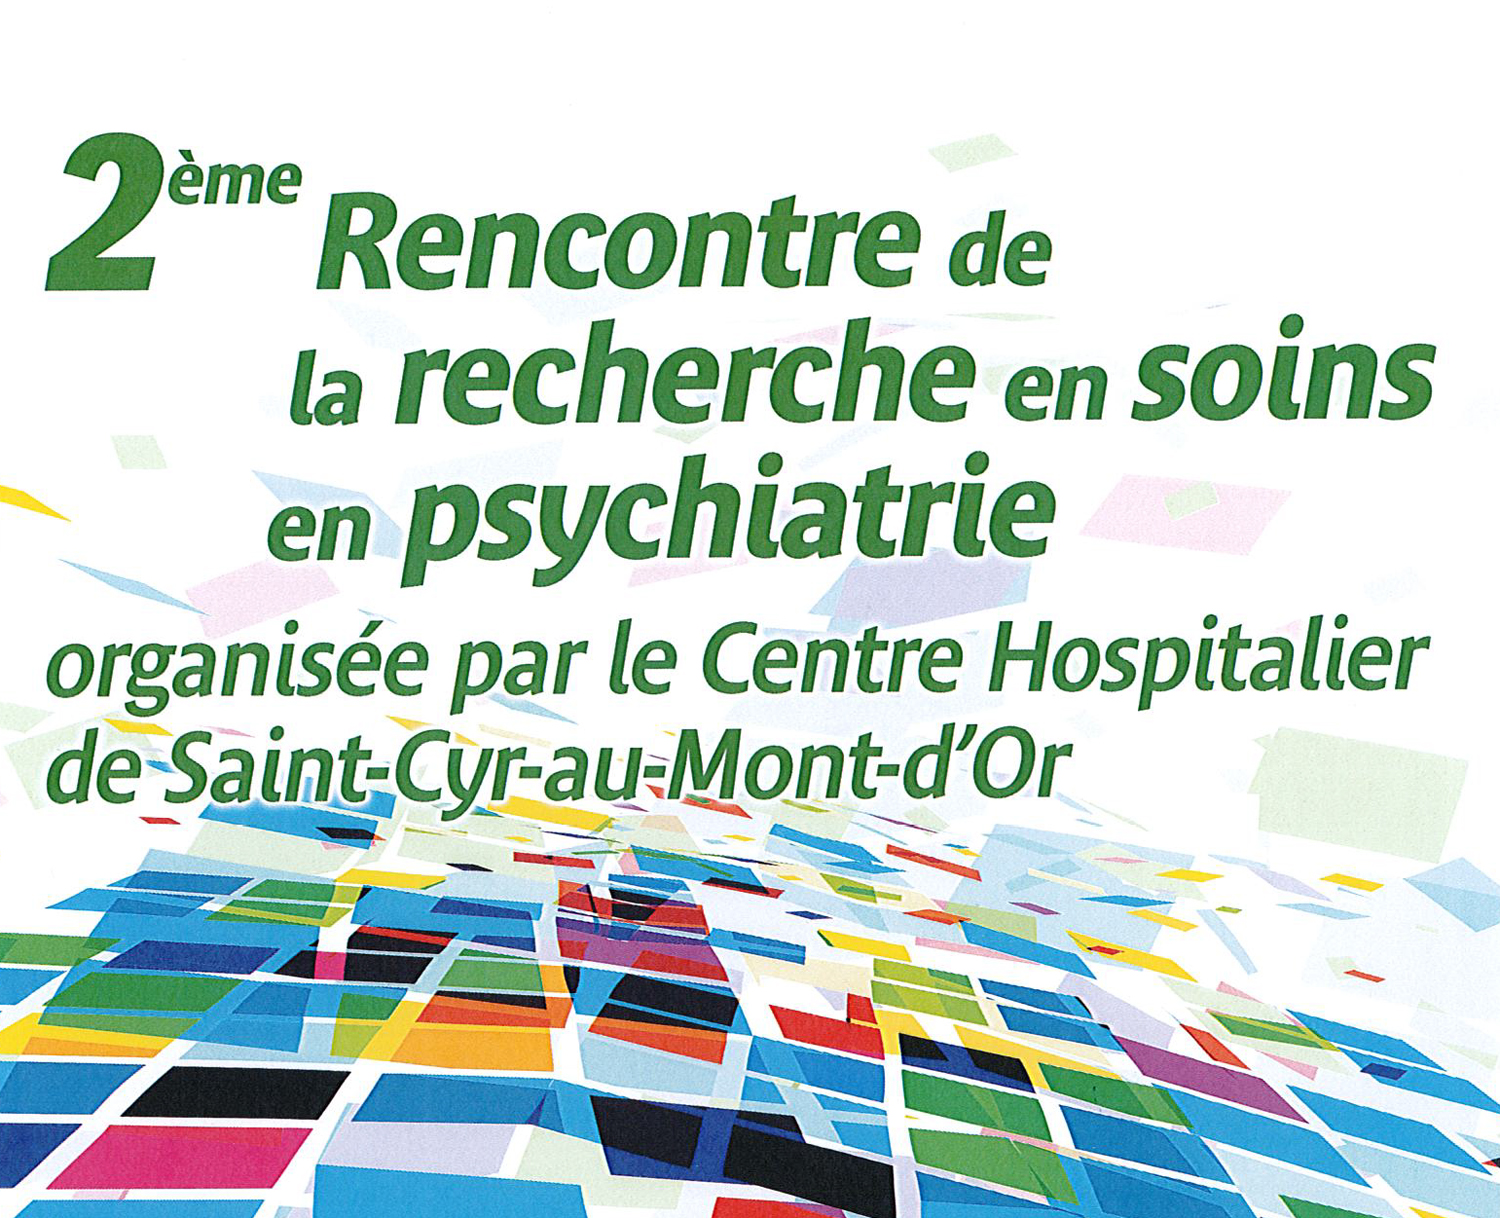 Rencontres internationales de recherche biomedicale